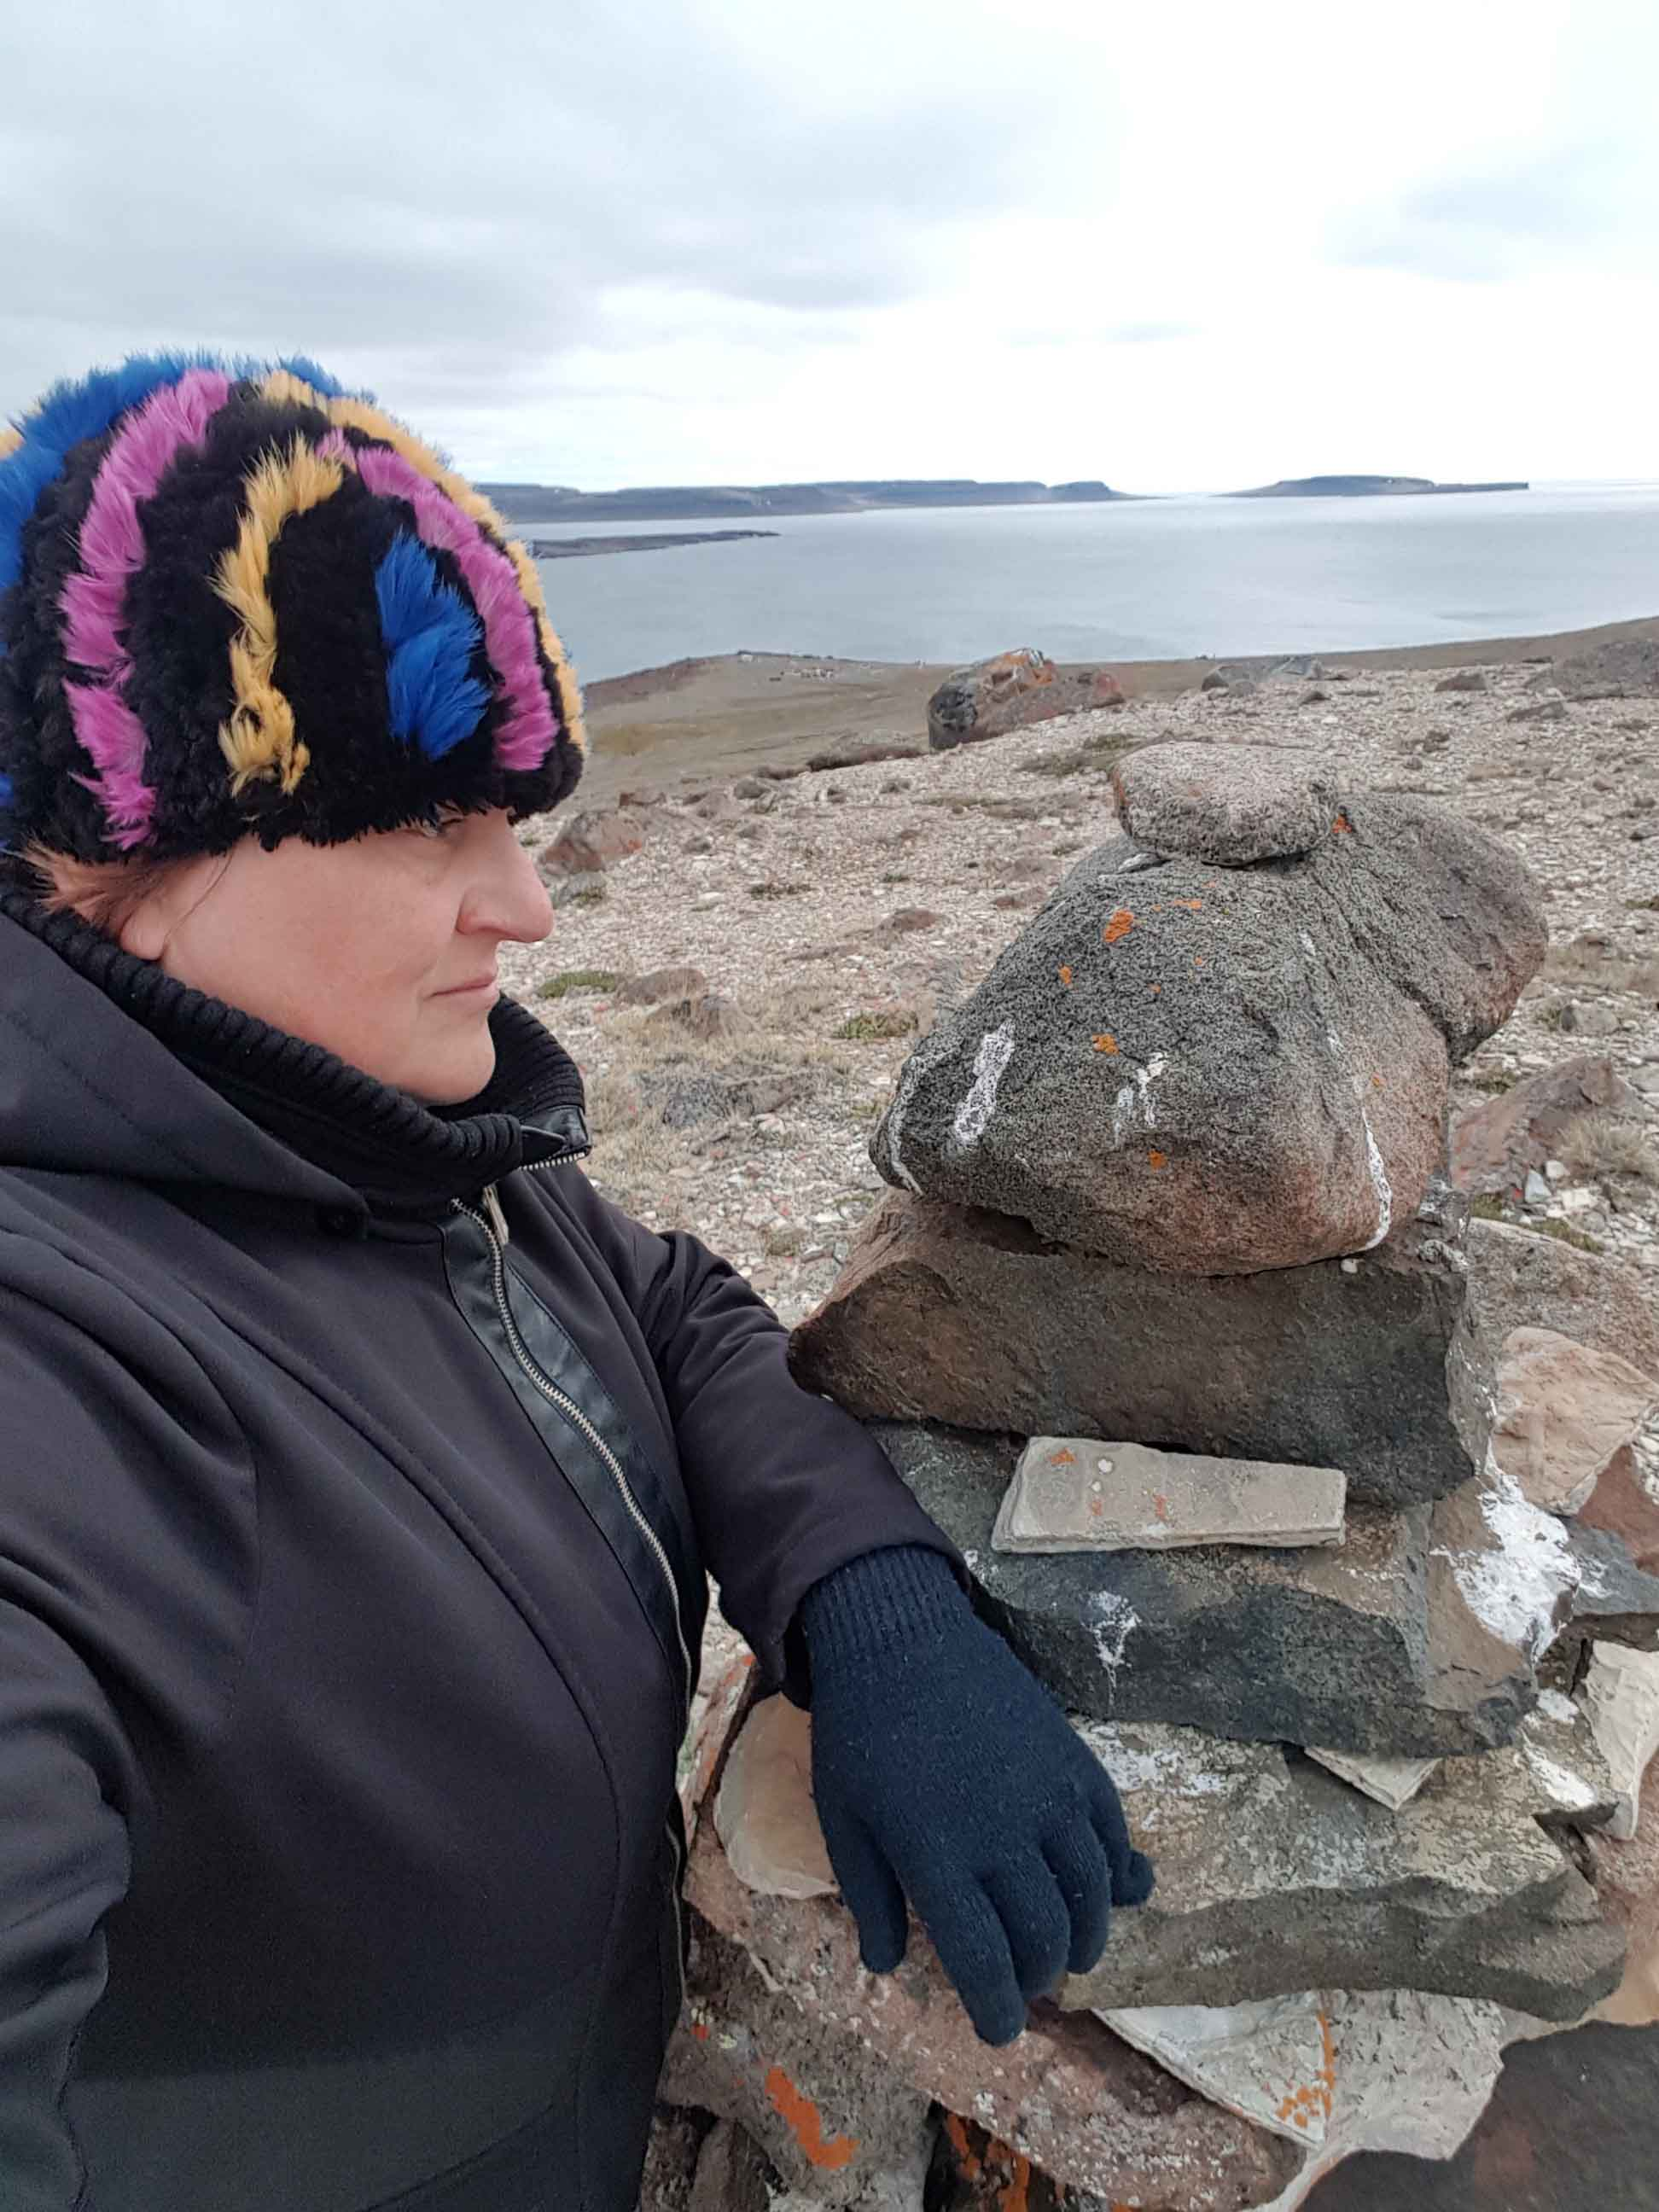 Hay River's April Glaicar explores the hills above Ulukhaktok on Victoria Island in July 2017 during phase one of her art project called 'Our True North', which features Ulukhaktok and Sachs Harbour. The results of that project - photos and glass art - will be presented to residents of Hay River on May 6. Photo courtesy of April Glaicar